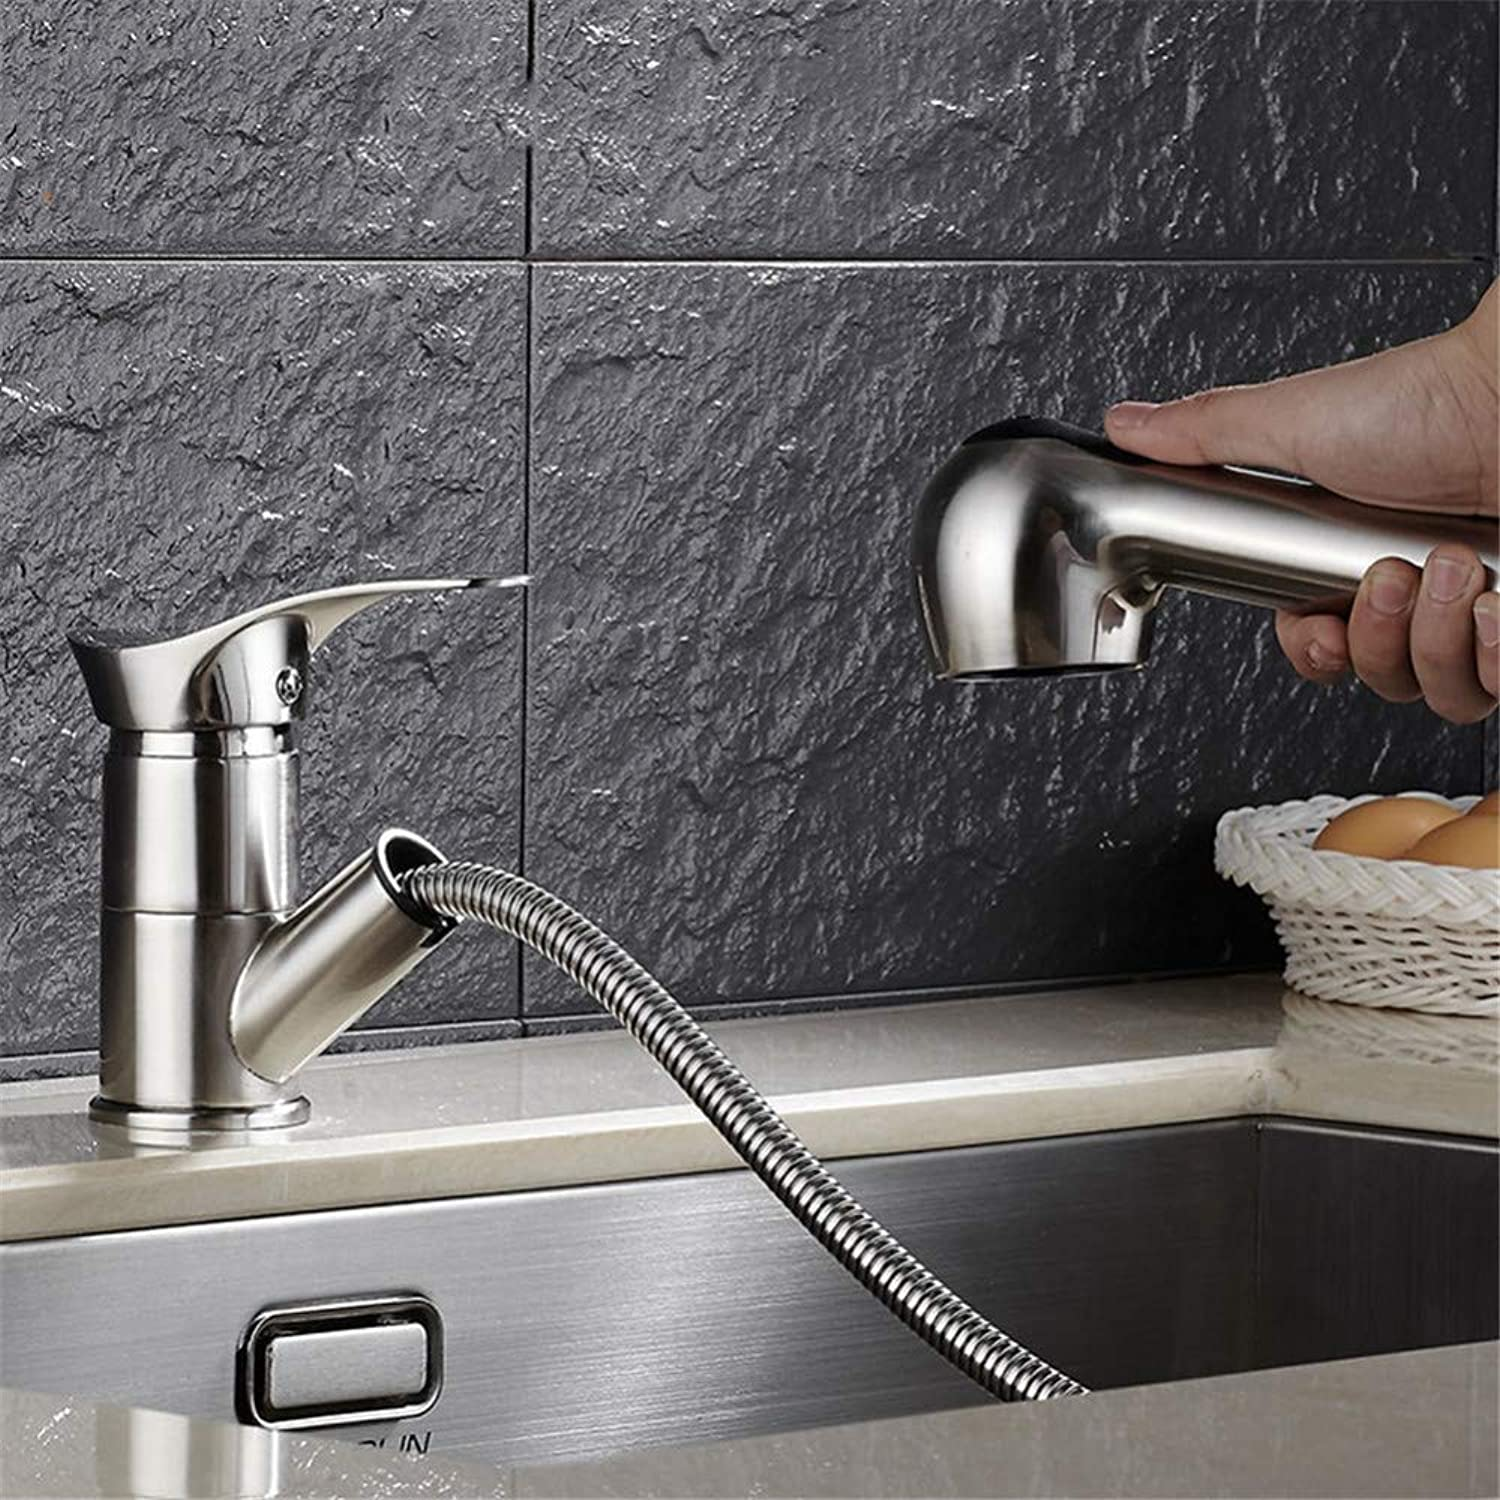 PajCzh Sink Bathroom Sink Taps Kitchen Faucet Sink Faucet Pull redating Brushed Hot And Cold Faucet